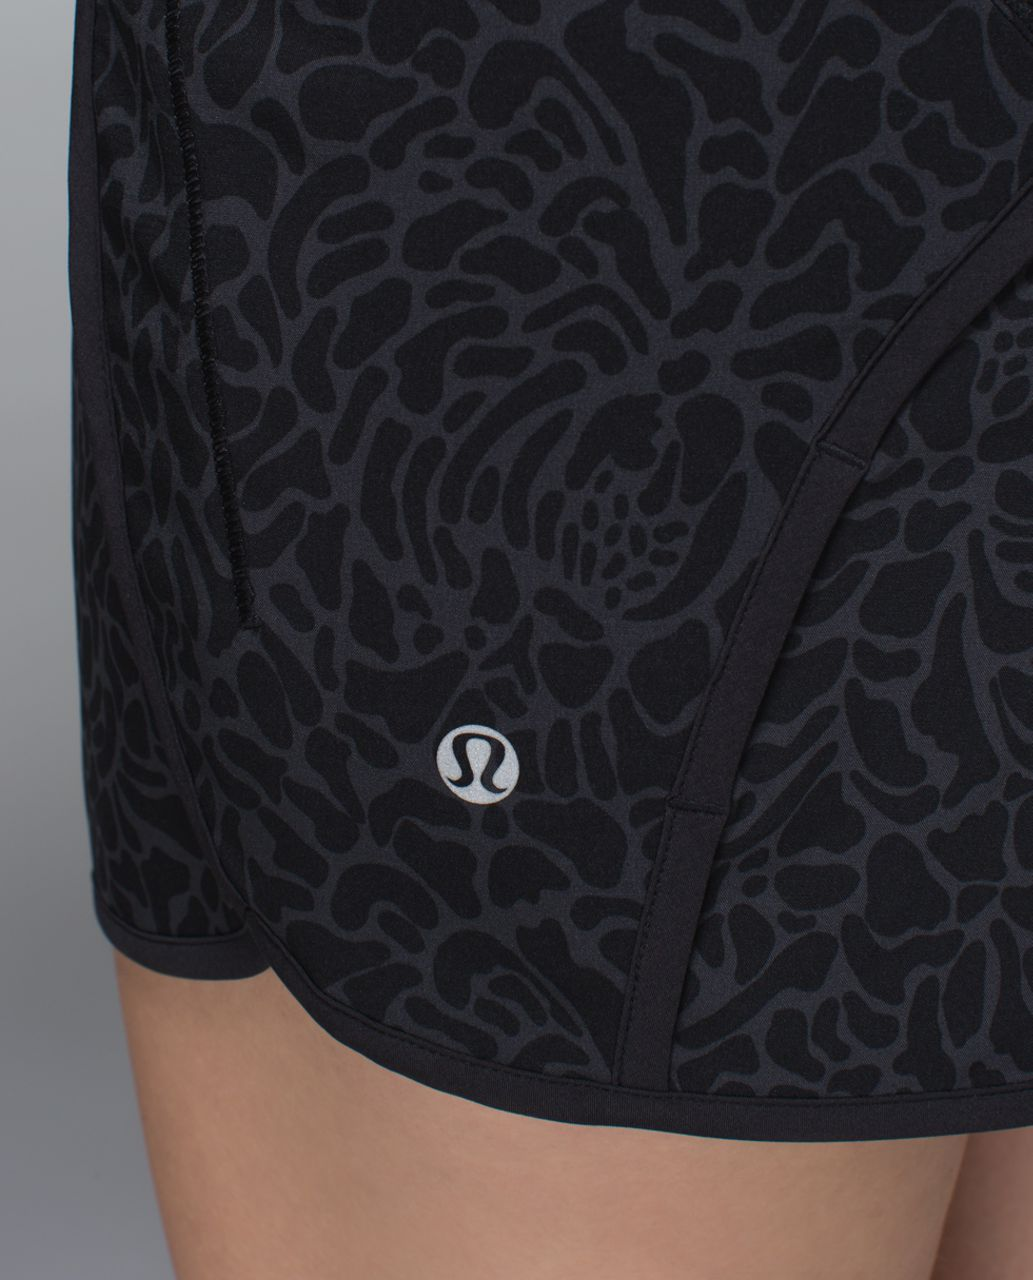 Lululemon Run Times Short *4-way Stretch - Petal Camo Printed Black Deep Coal / Black